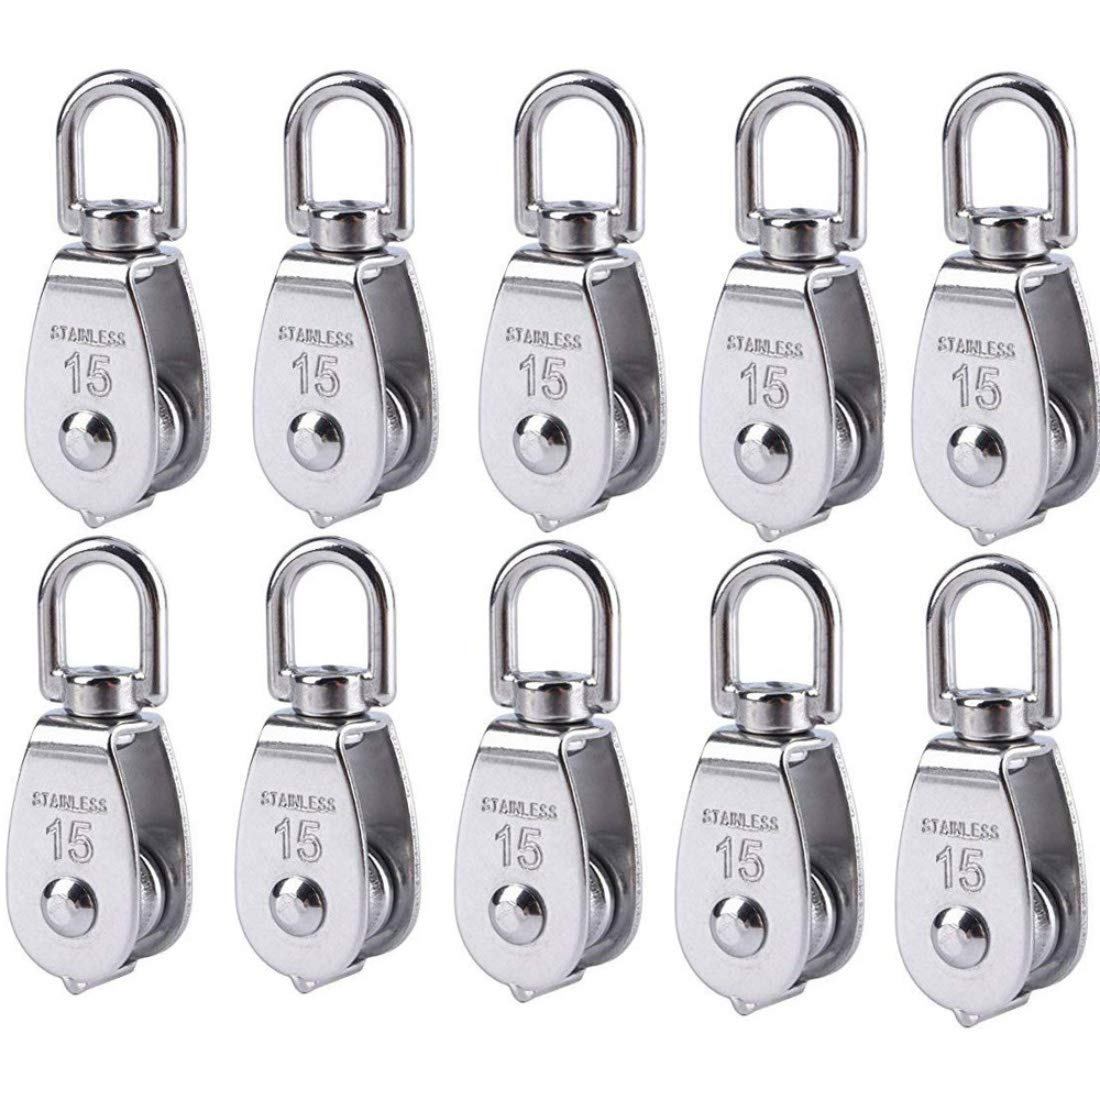 Nxtop Stainless Steel Wire Rope Crane Pulley Block M15 Lifting Crane Swivel Hook Single Pulley Block Hanging Wire Towing Wheel 10Pcs